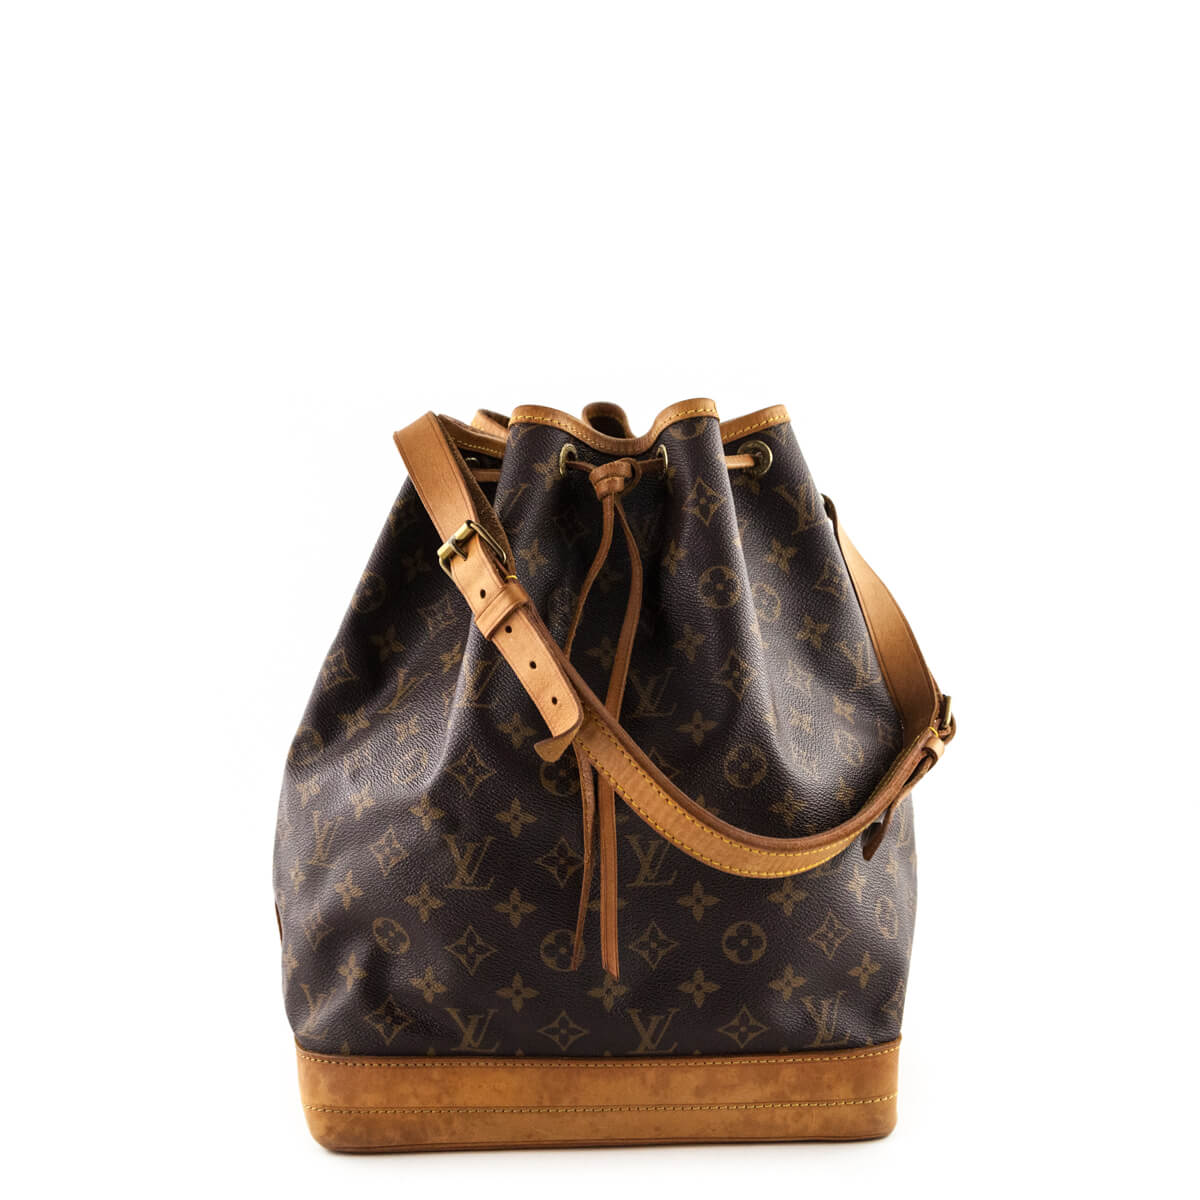 a546650e8ffe Louis Vuitton Monogram Vintage Noe Bucket - LOVE that BAG - Preowned  Authentic Designer Handbags ...